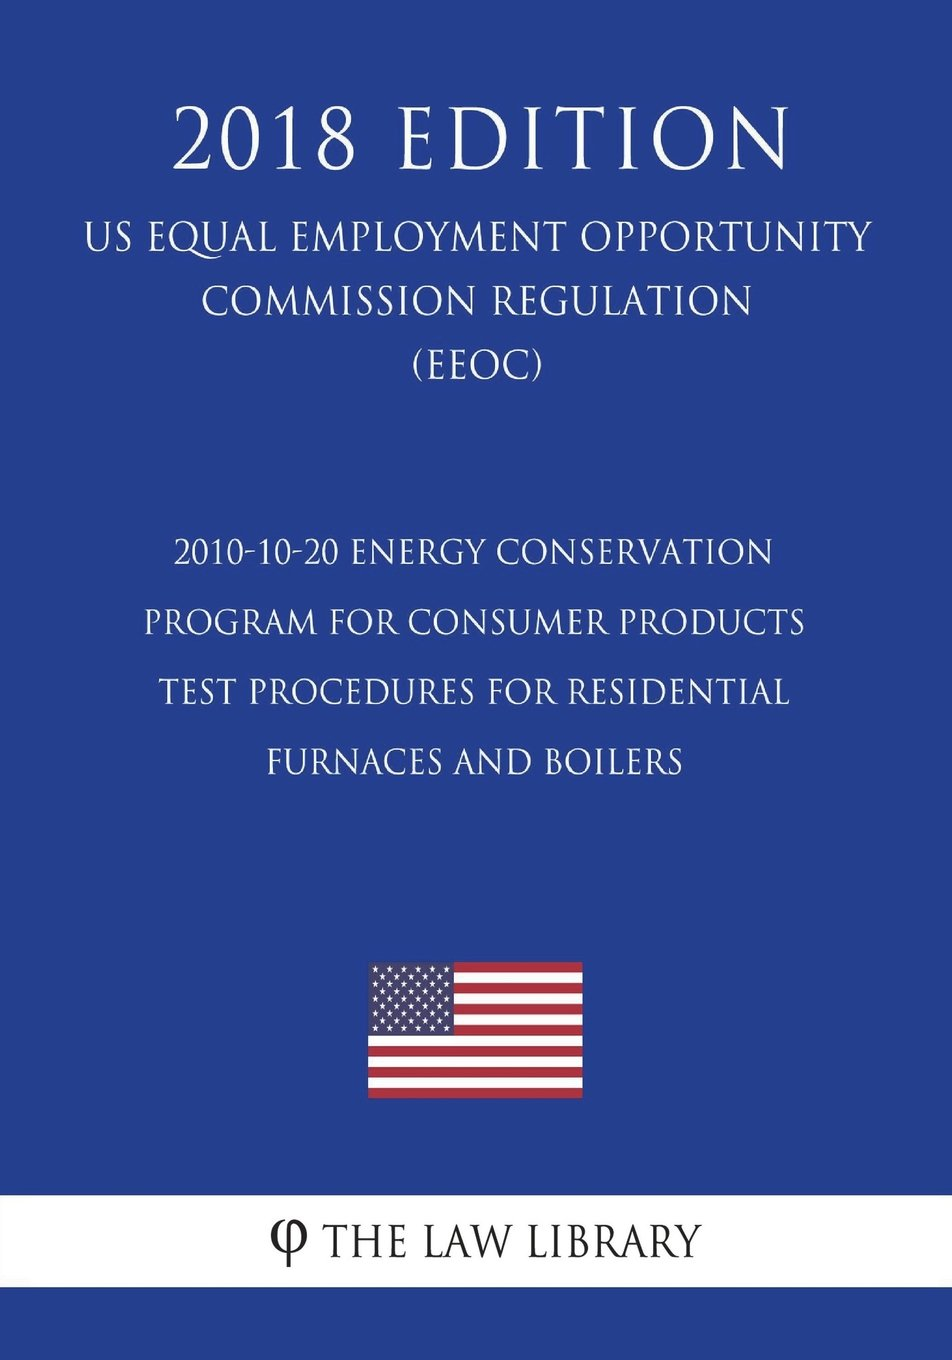 Download 2010-10-20 Energy Conservation Program for Consumer Products - Test Procedures for Residential Furnaces and Boilers (Standby Mode and Off Mode); Fina ... Office Regulation) (EERE) (2018 Edition) pdf epub